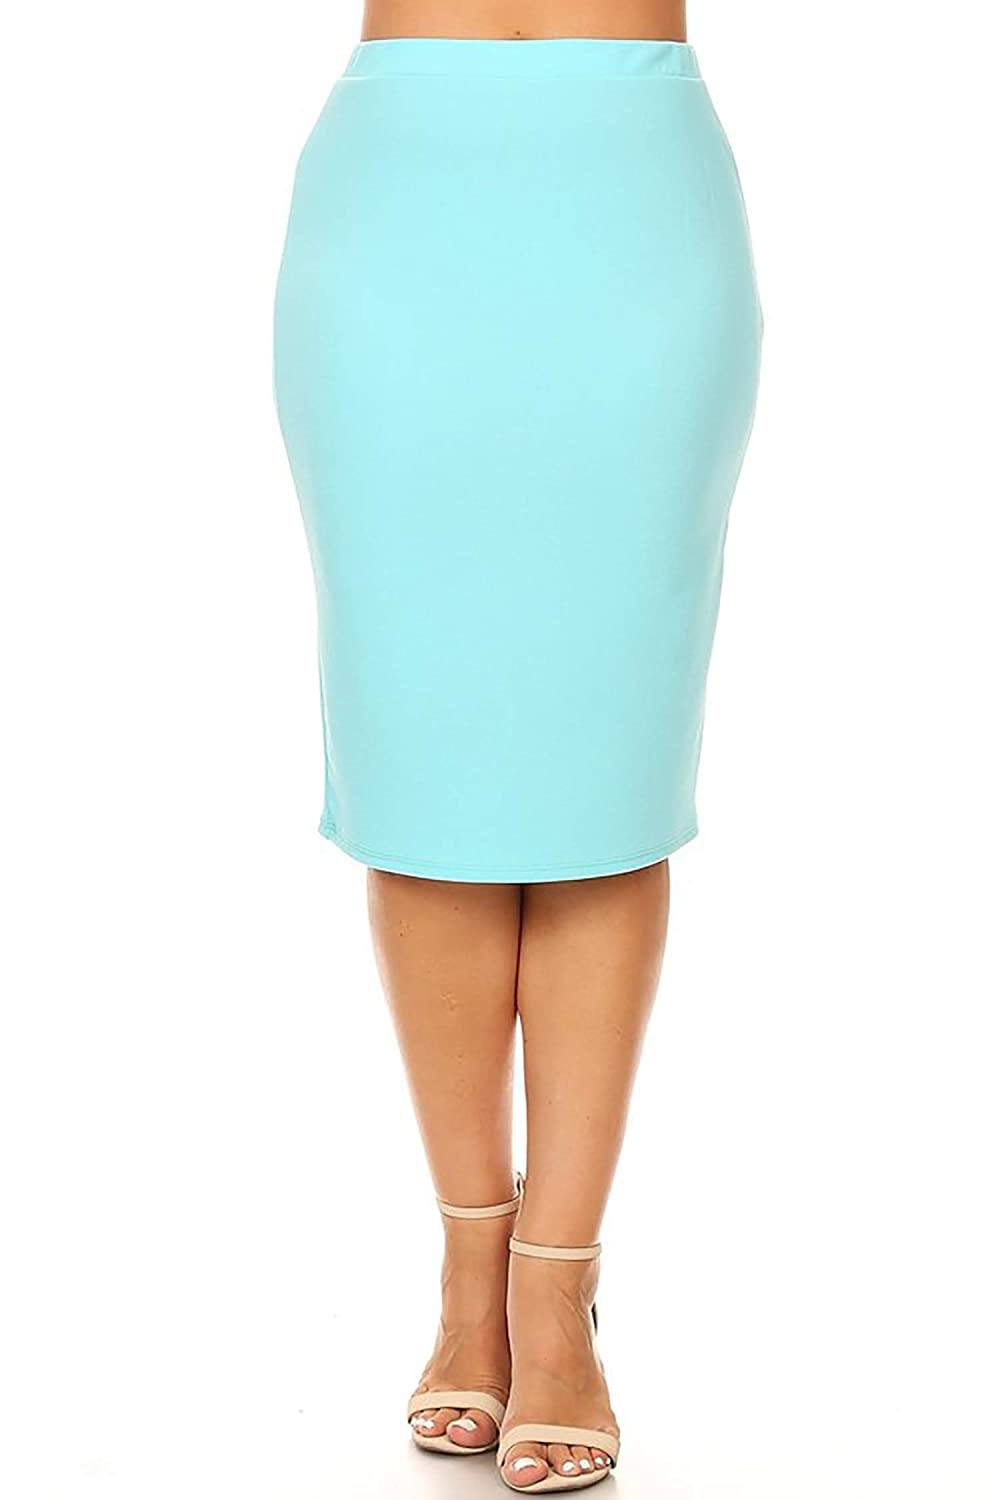 81adc95179 Women's Plus Size Solid Casual Knee Length High Waist Pencil Skirt/Made in  USA at Amazon Women's Clothing store: